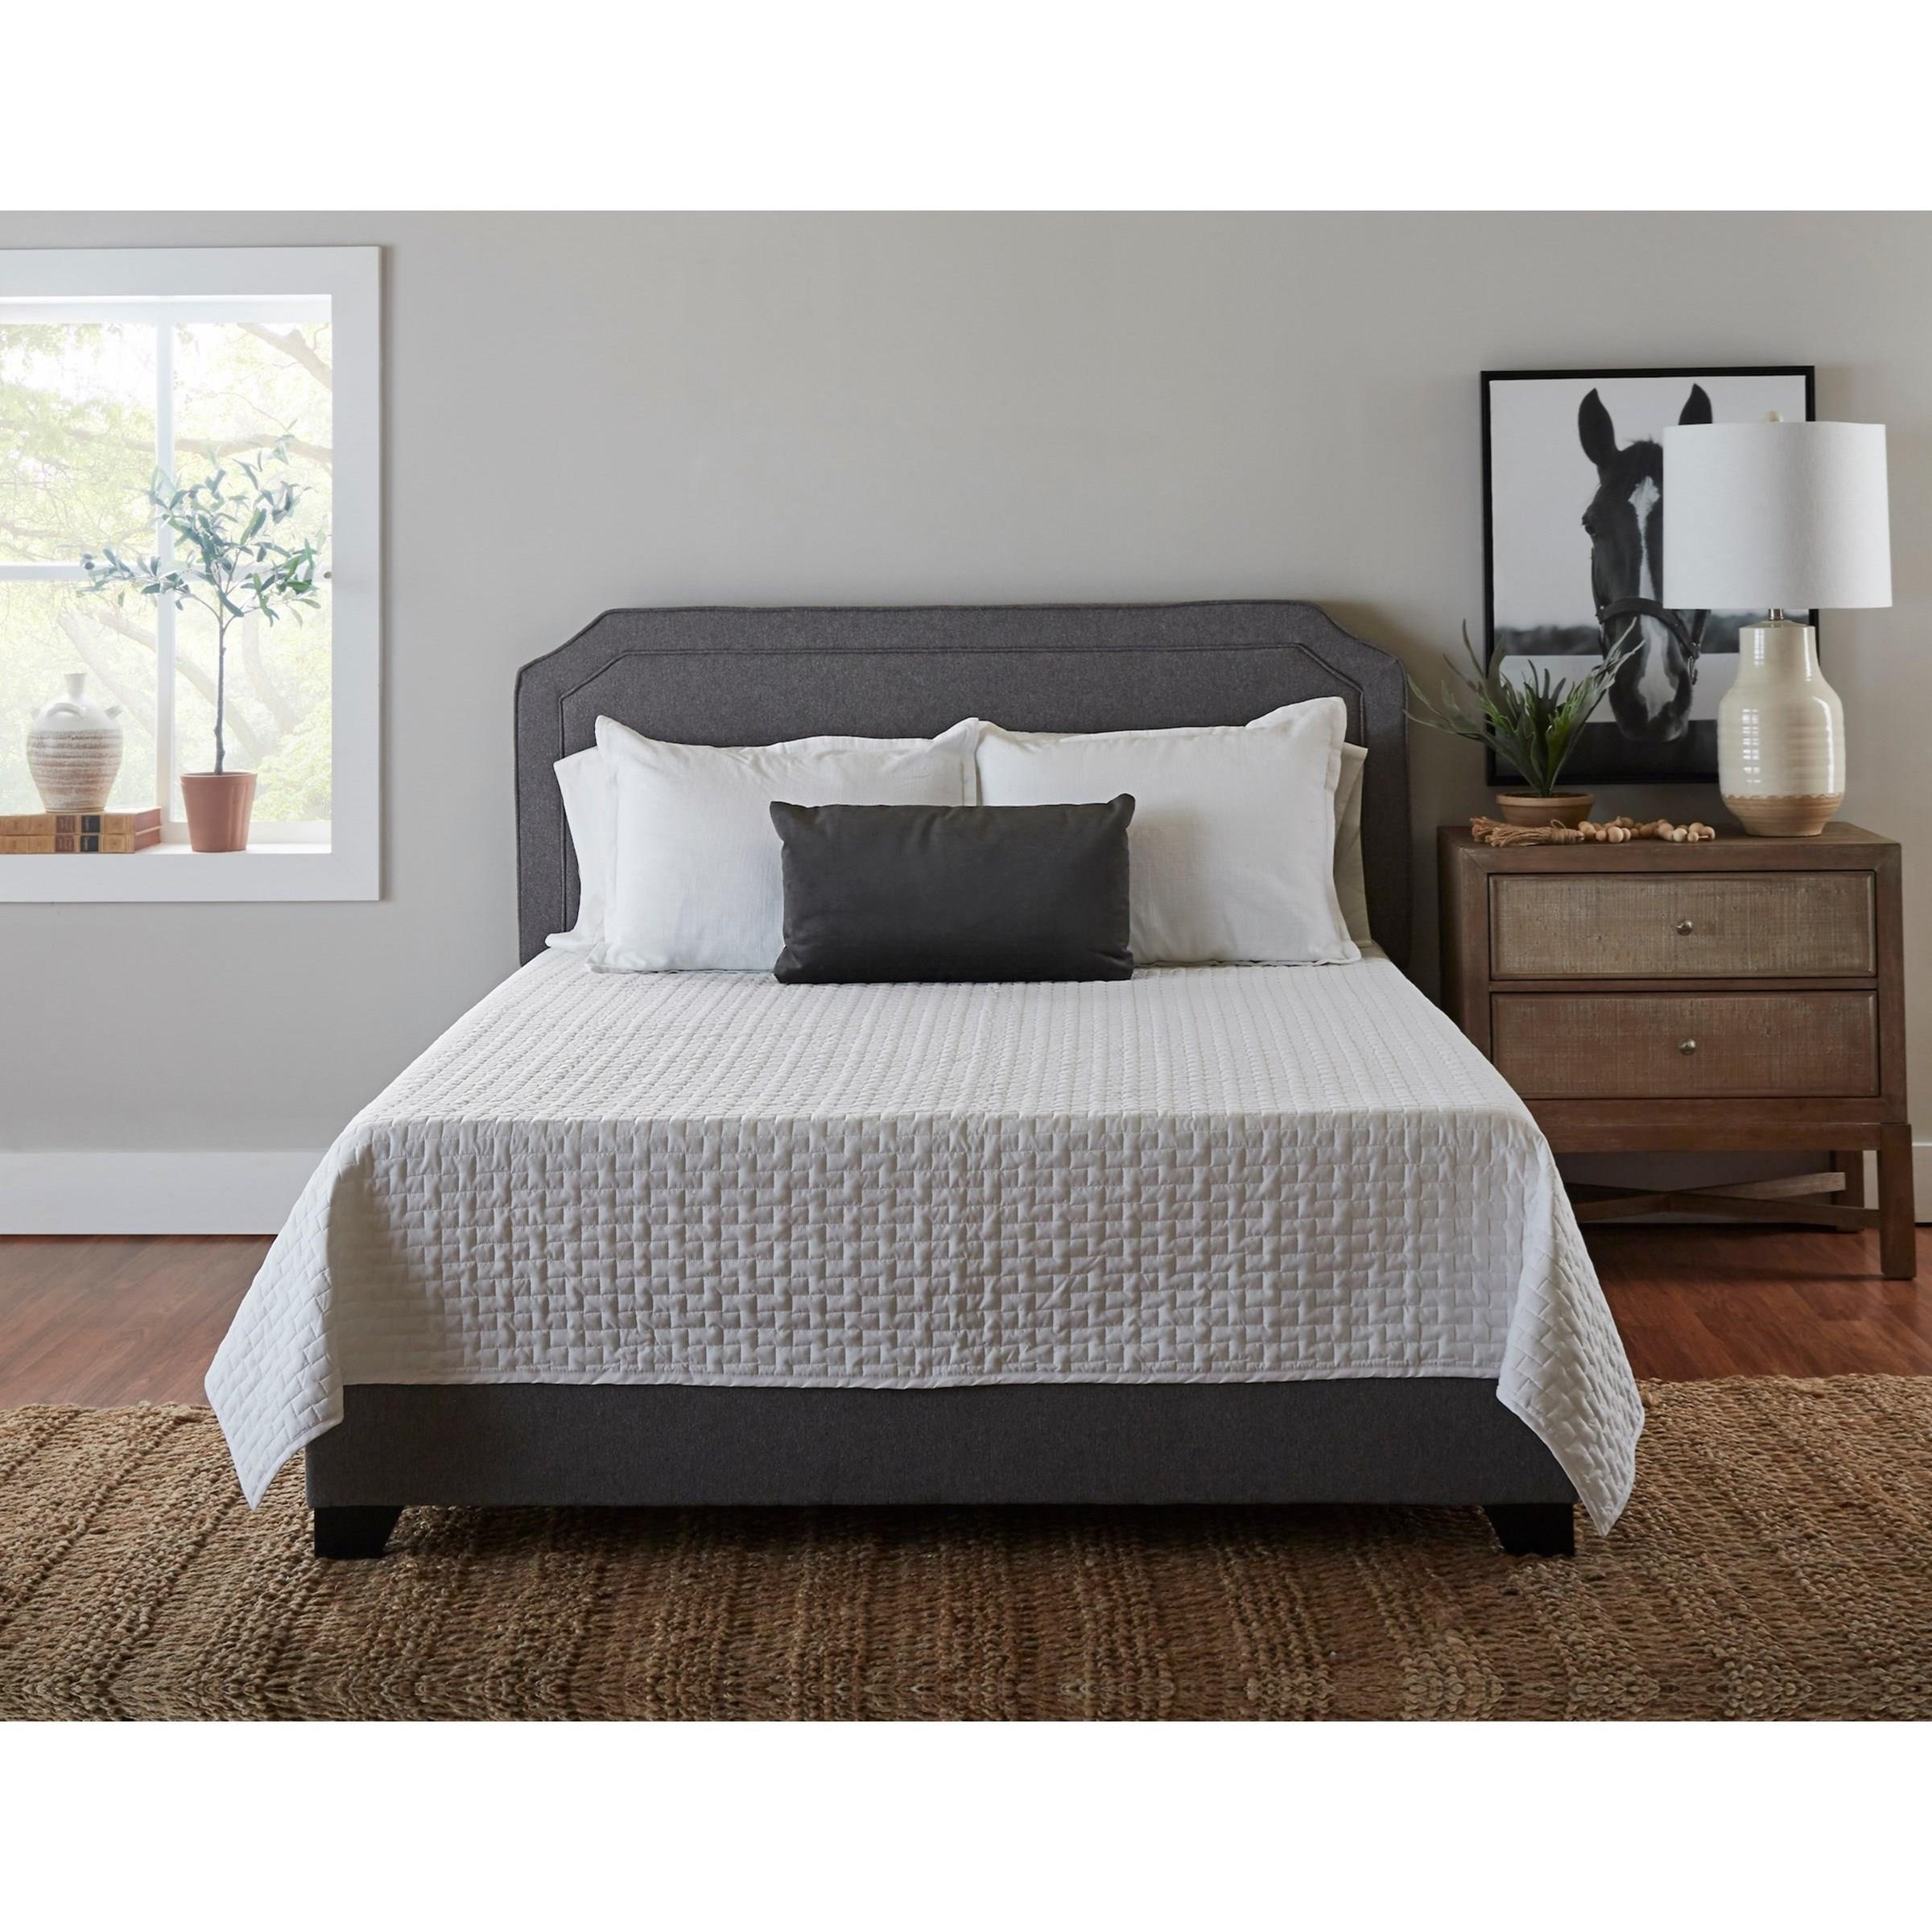 Possibilities - 294 King Upholstered Bed by Klaussner International at Pilgrim Furniture City